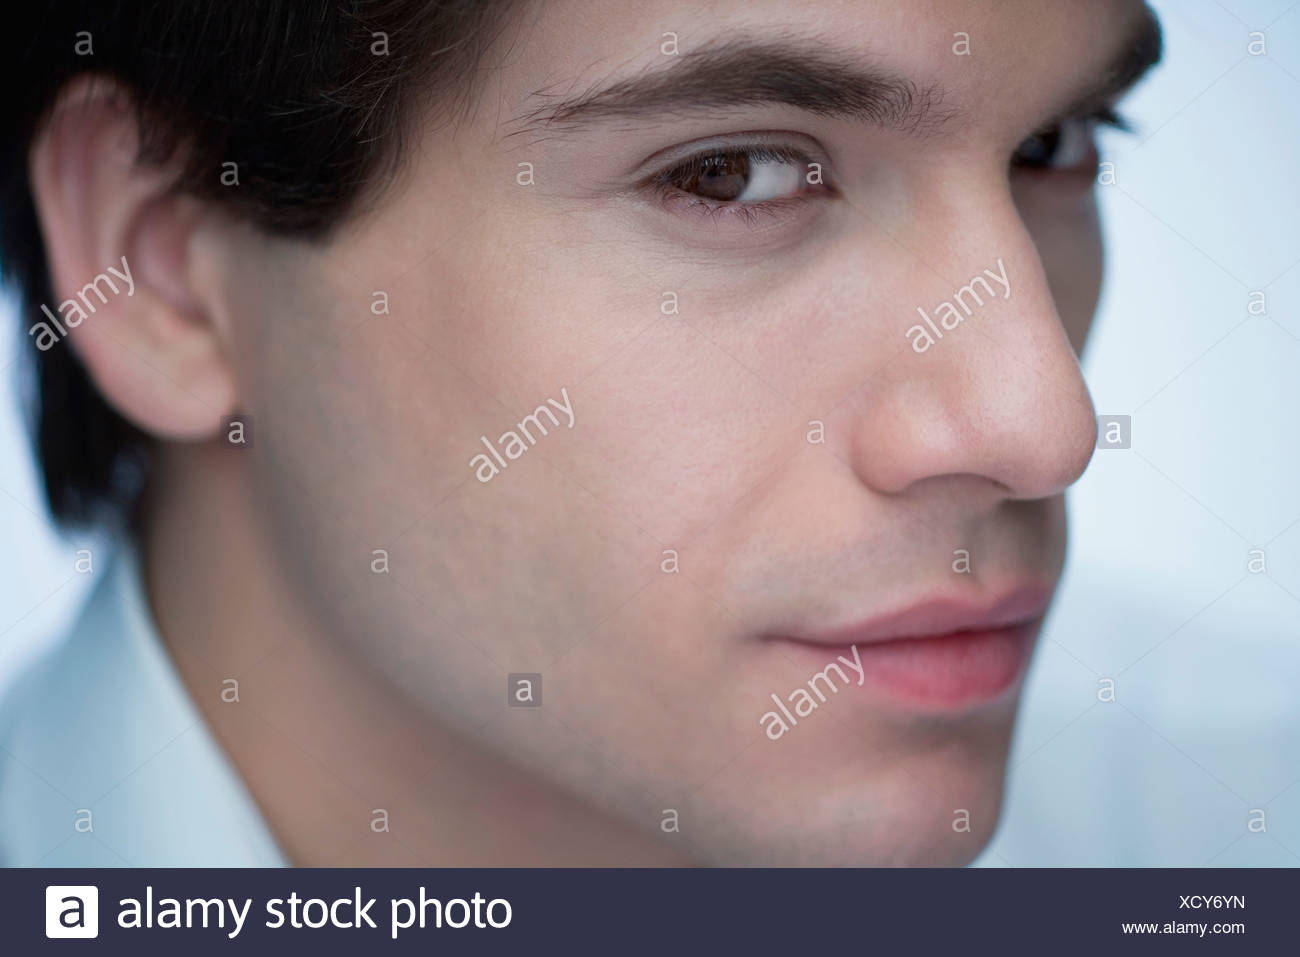 Young man glancing sideways at camera, close-up - Stock Image